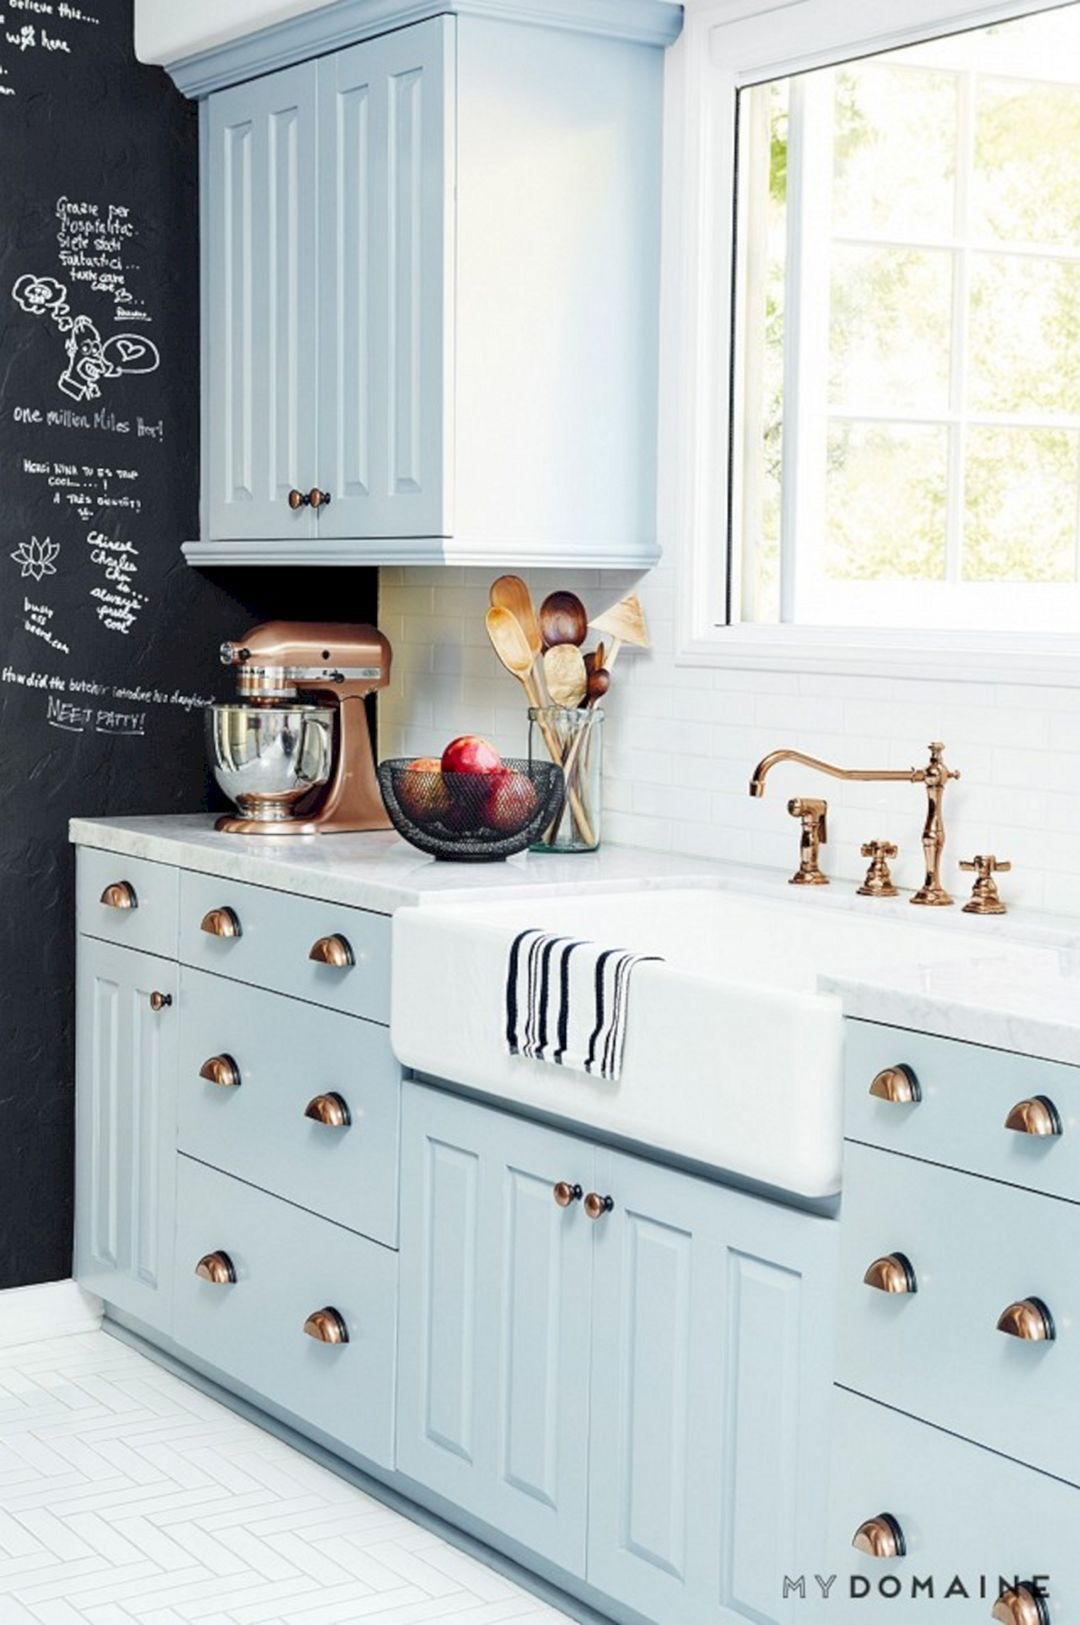 Outstanding 45+ Beautiful Design Mint And Copper Ideas For ...